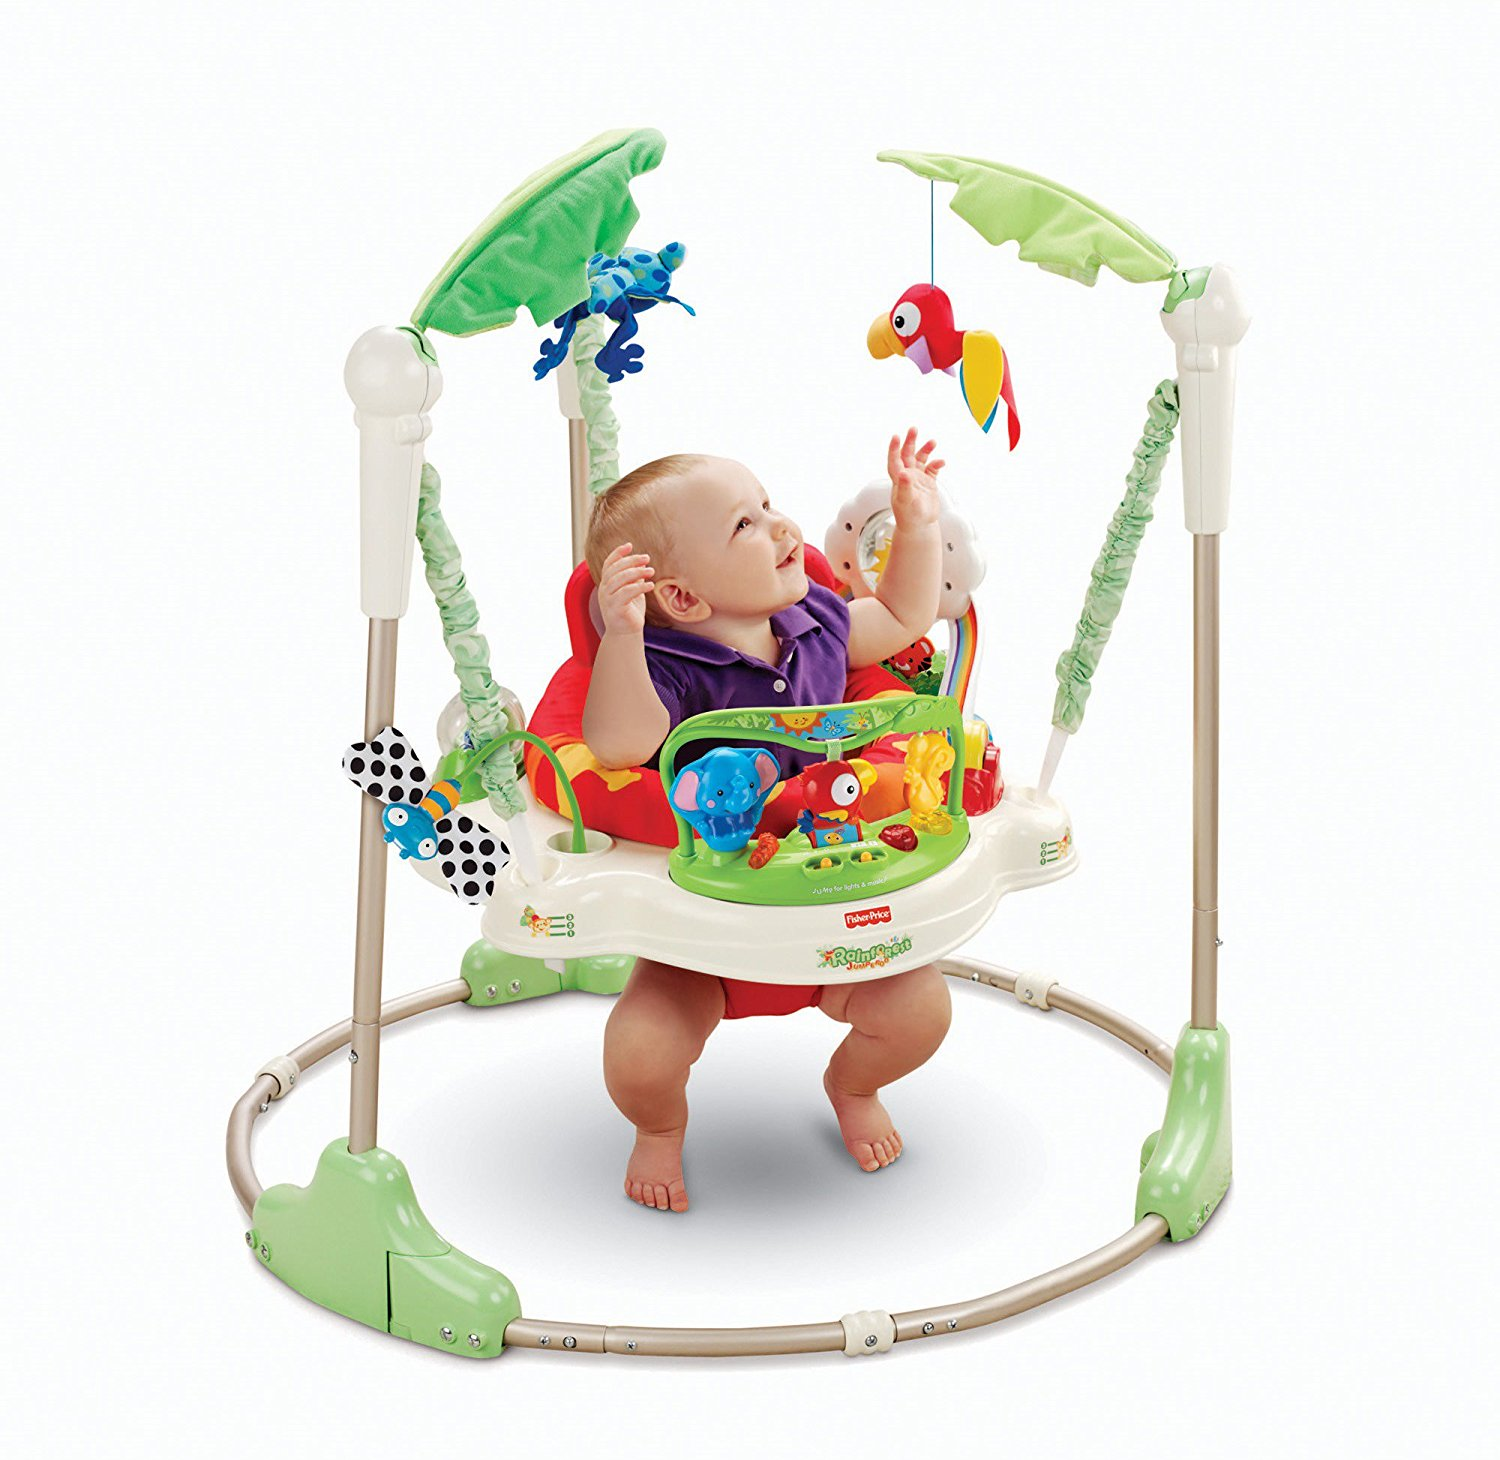 10 Best Baby Toys to Keep Kids Busy While Working at Home